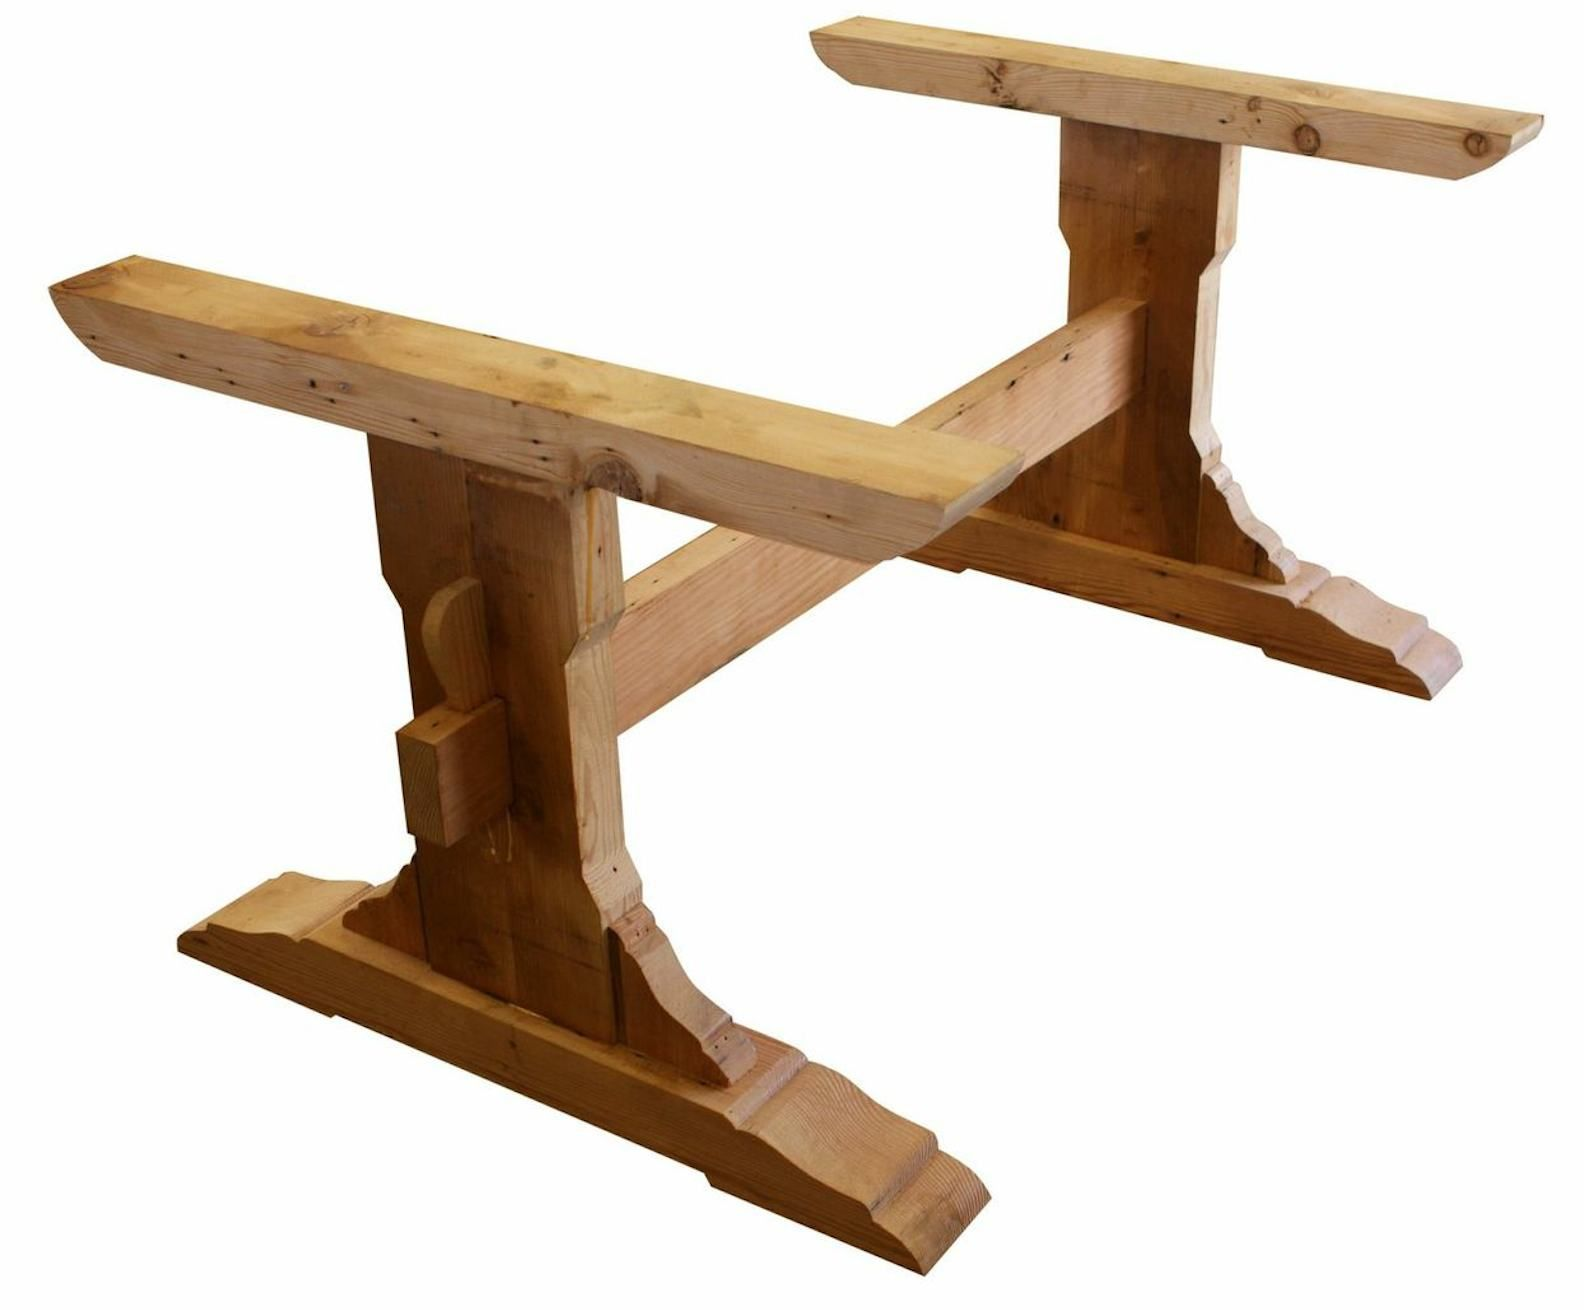 Image of reclaimed wood trestle table woodworking for Wooden small dining table